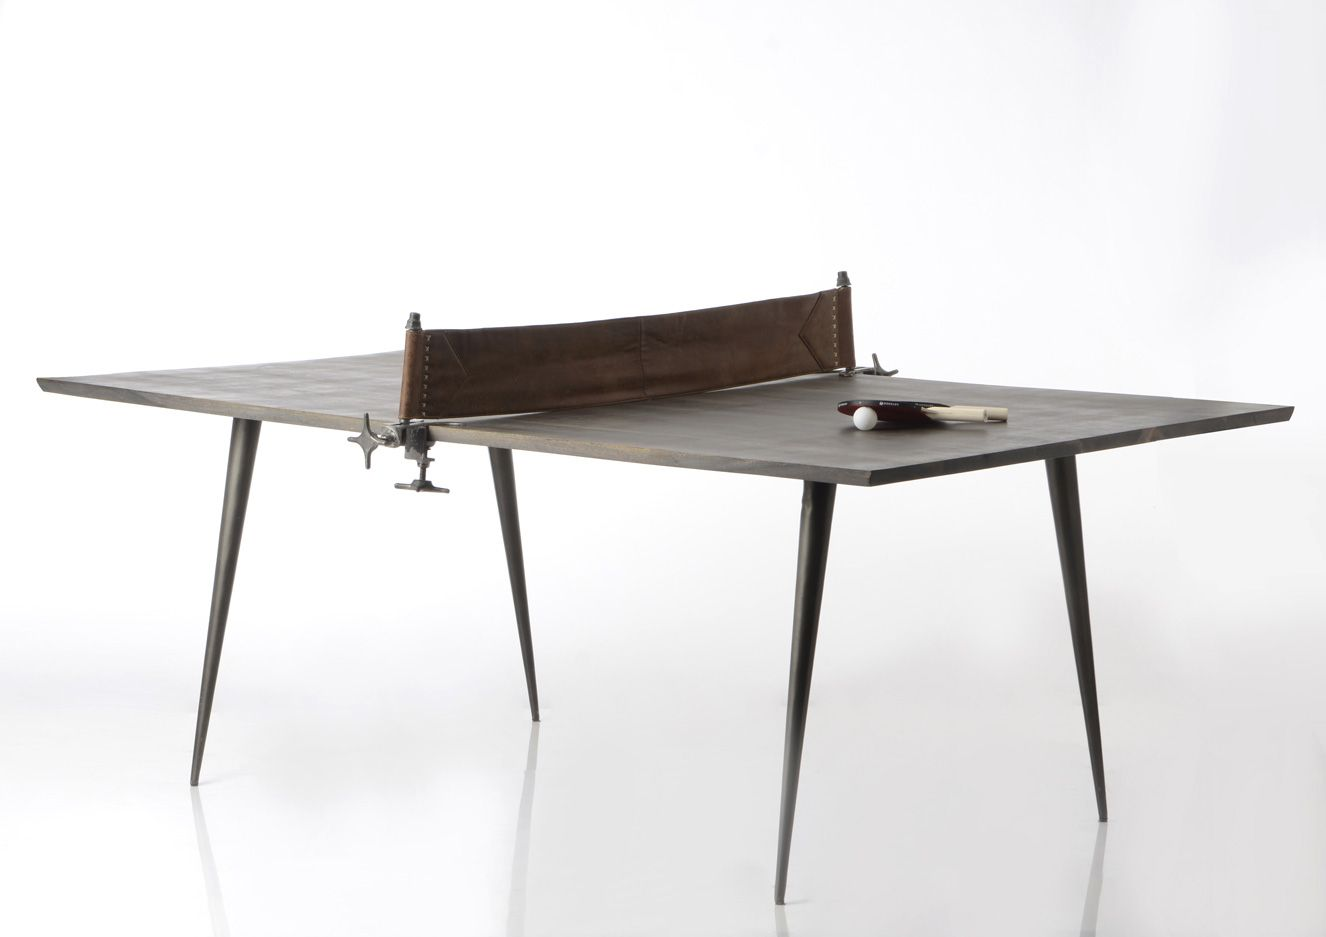 Luxurious Dining Table Latest Wooden Design Which Is Long Thin Uk